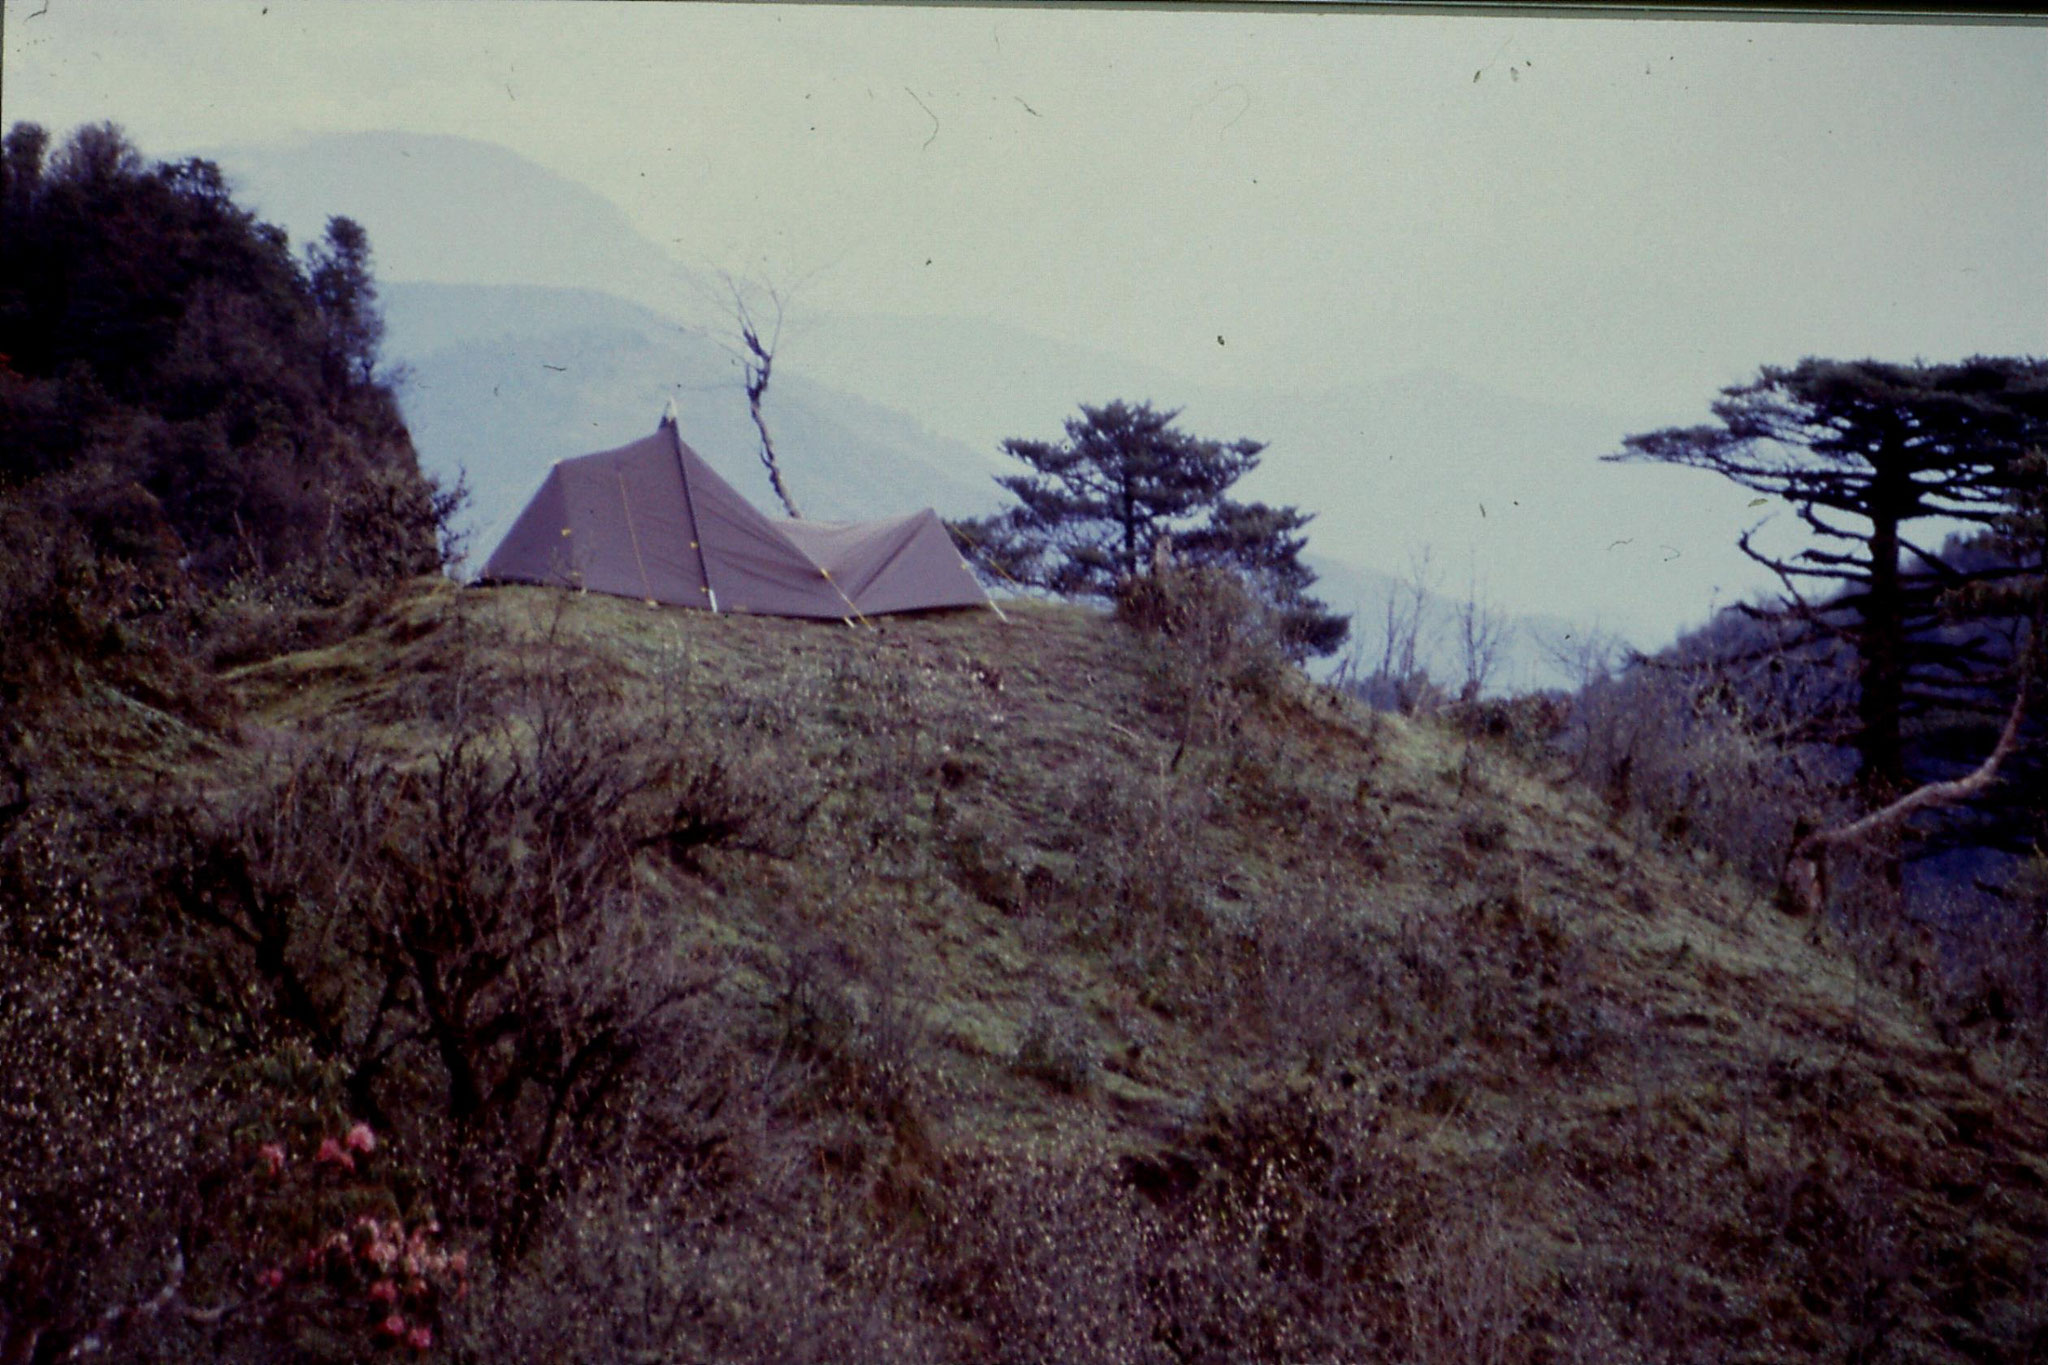 5/5/1990: 7: Bikkebhanging: our tent